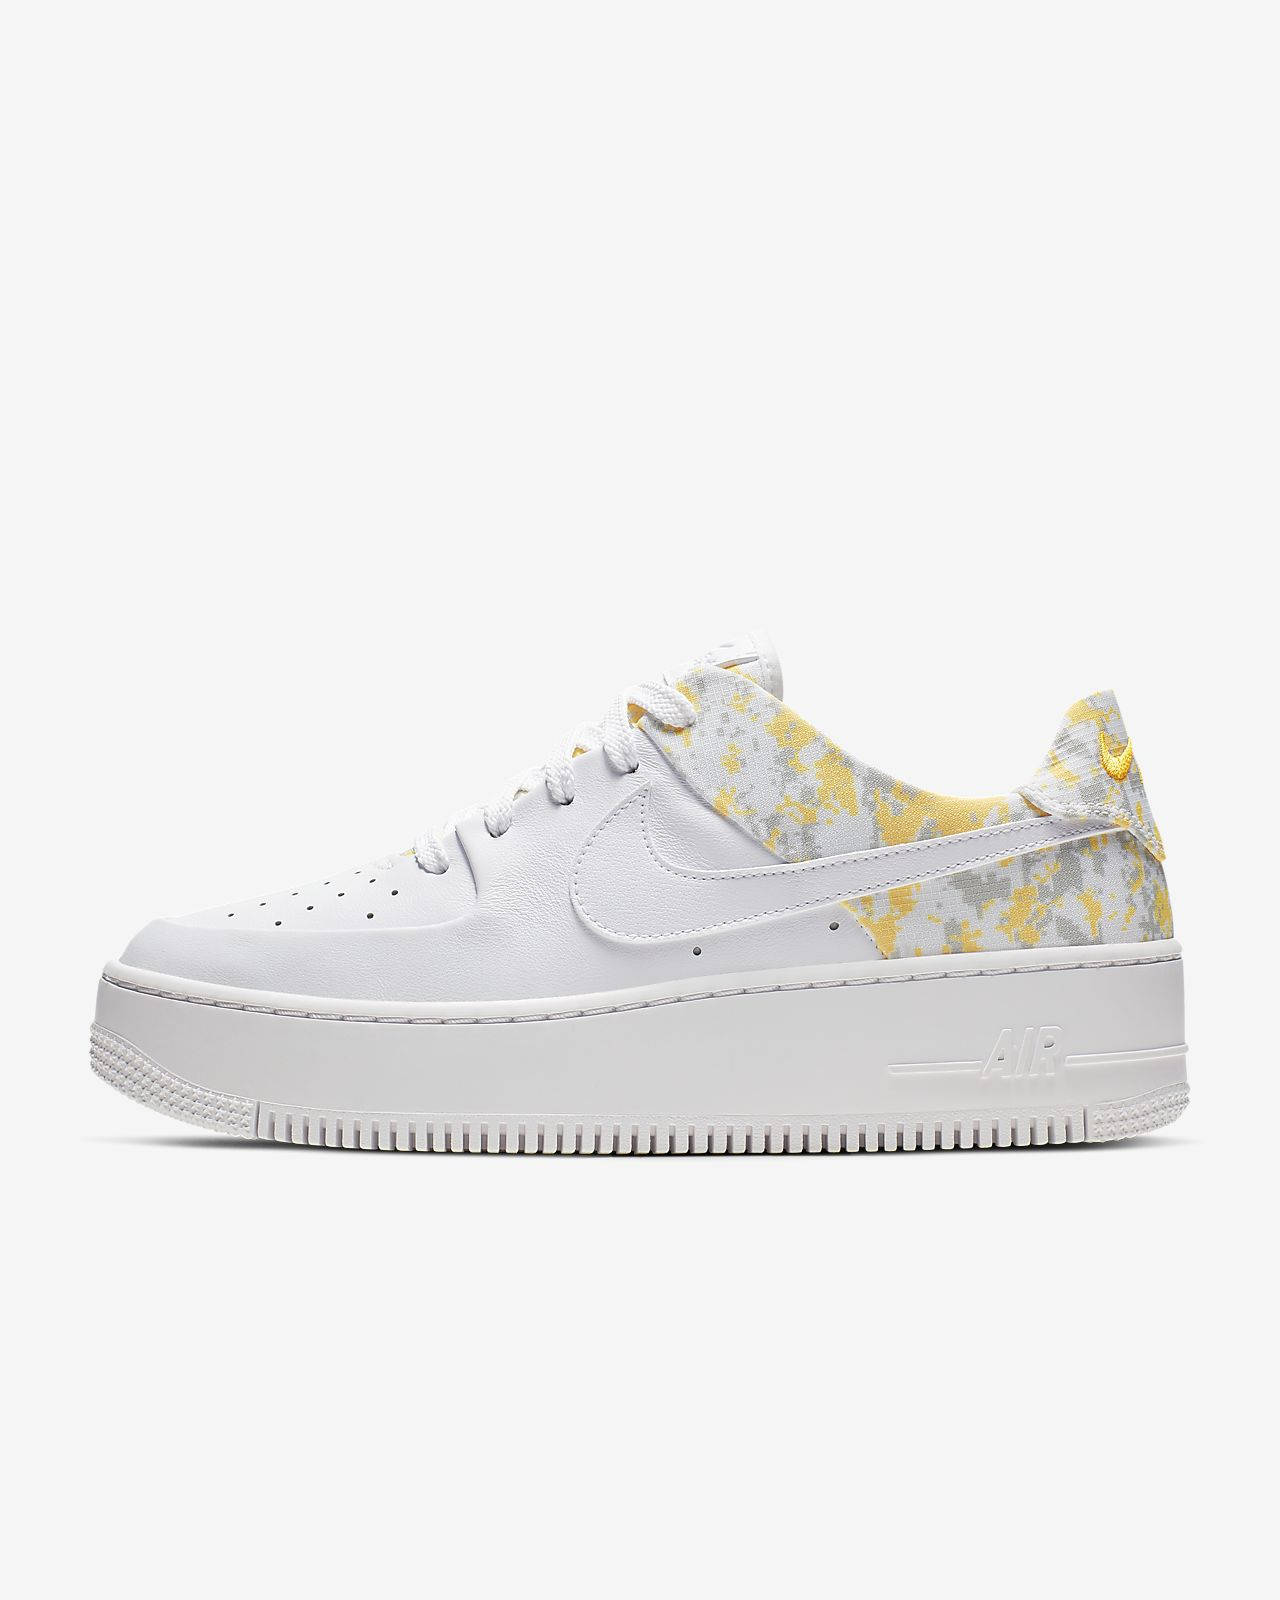 Nike Air Force 1 Sage Low Premium Camo Damenschuh